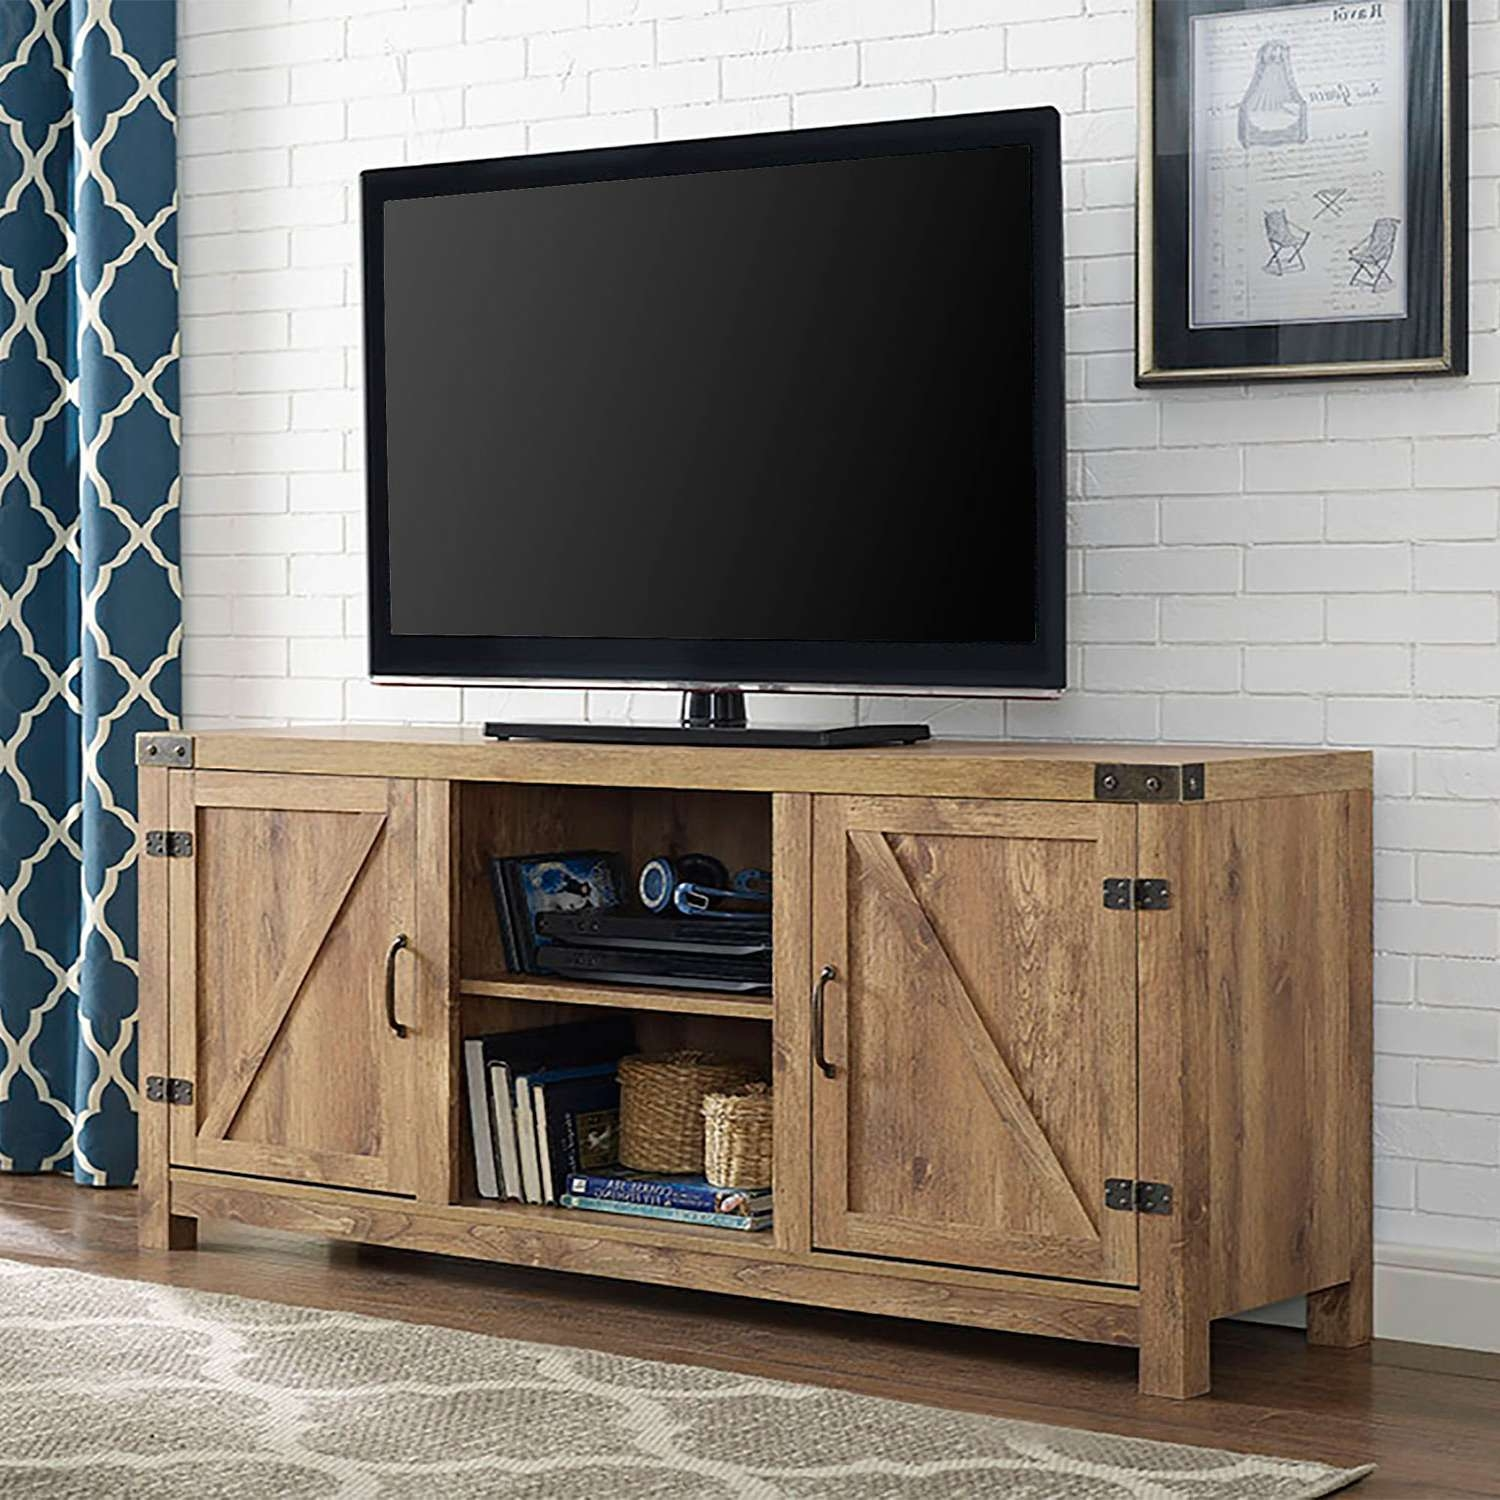 Tv Stands Under $100 For Under Tv Cabinets (View 17 of 20)